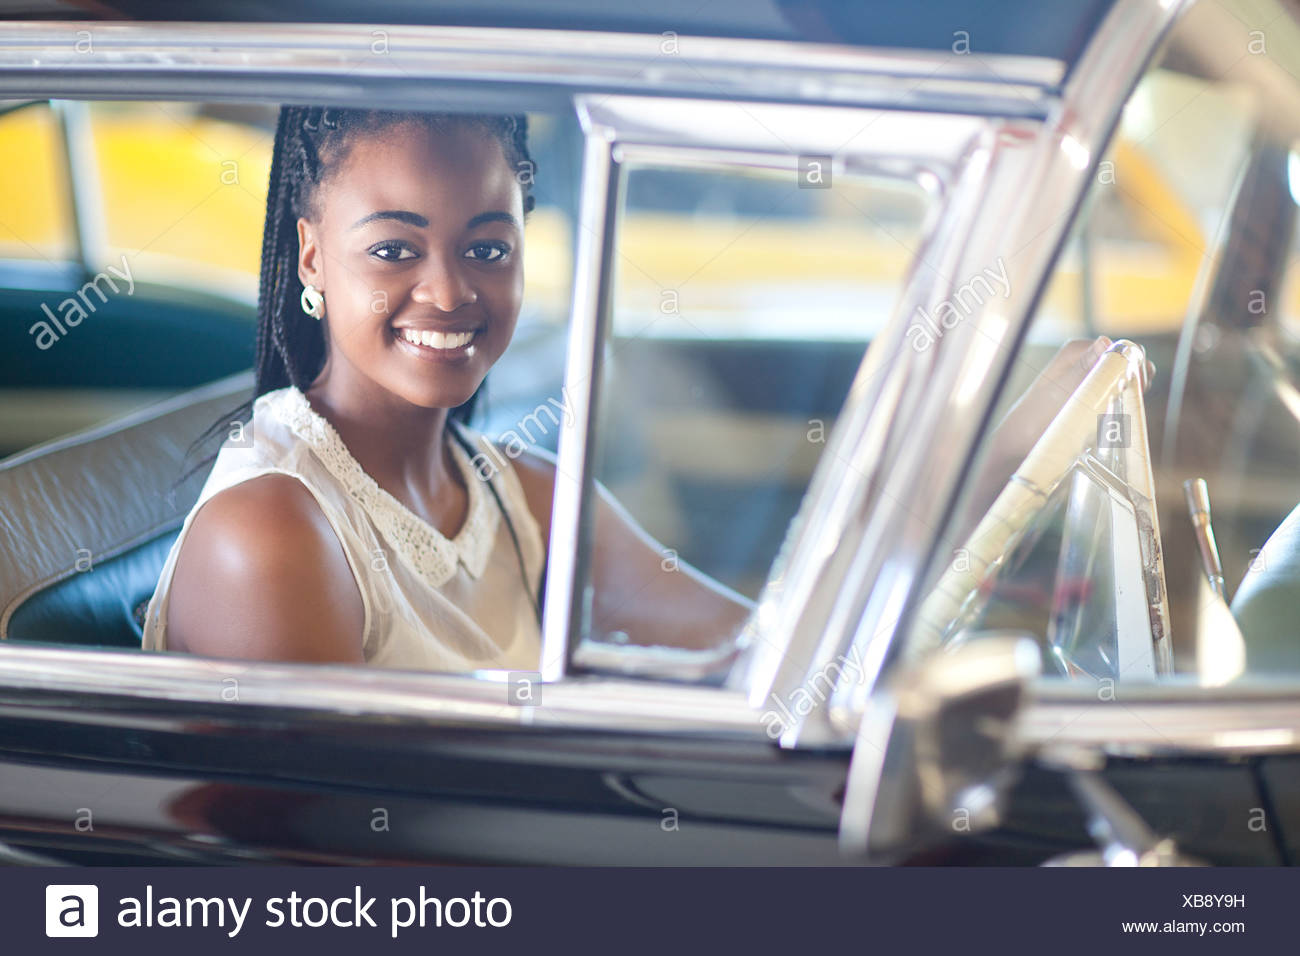 Woman in braided hairstyle driving vintage car - Stock Image